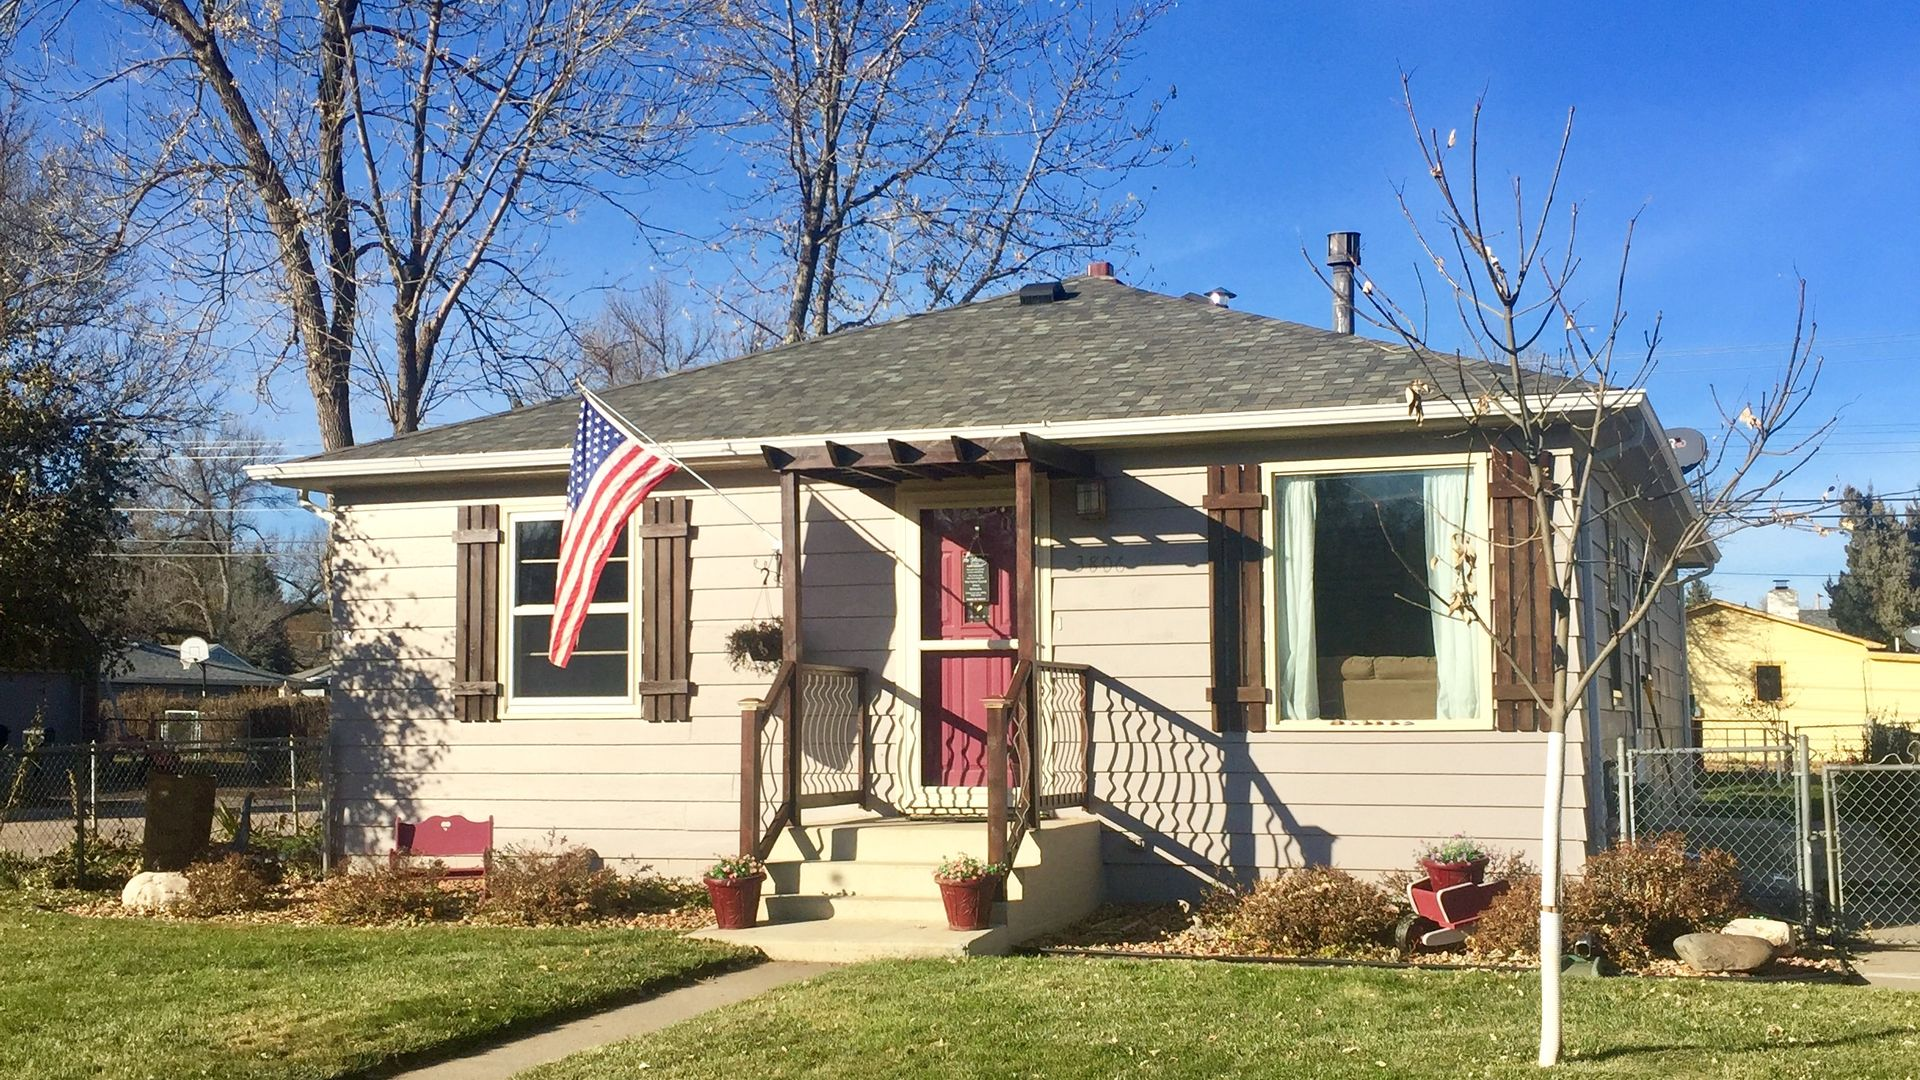 Rapid City Real Estate - Rapid City SD Homes For Sale | Zillow